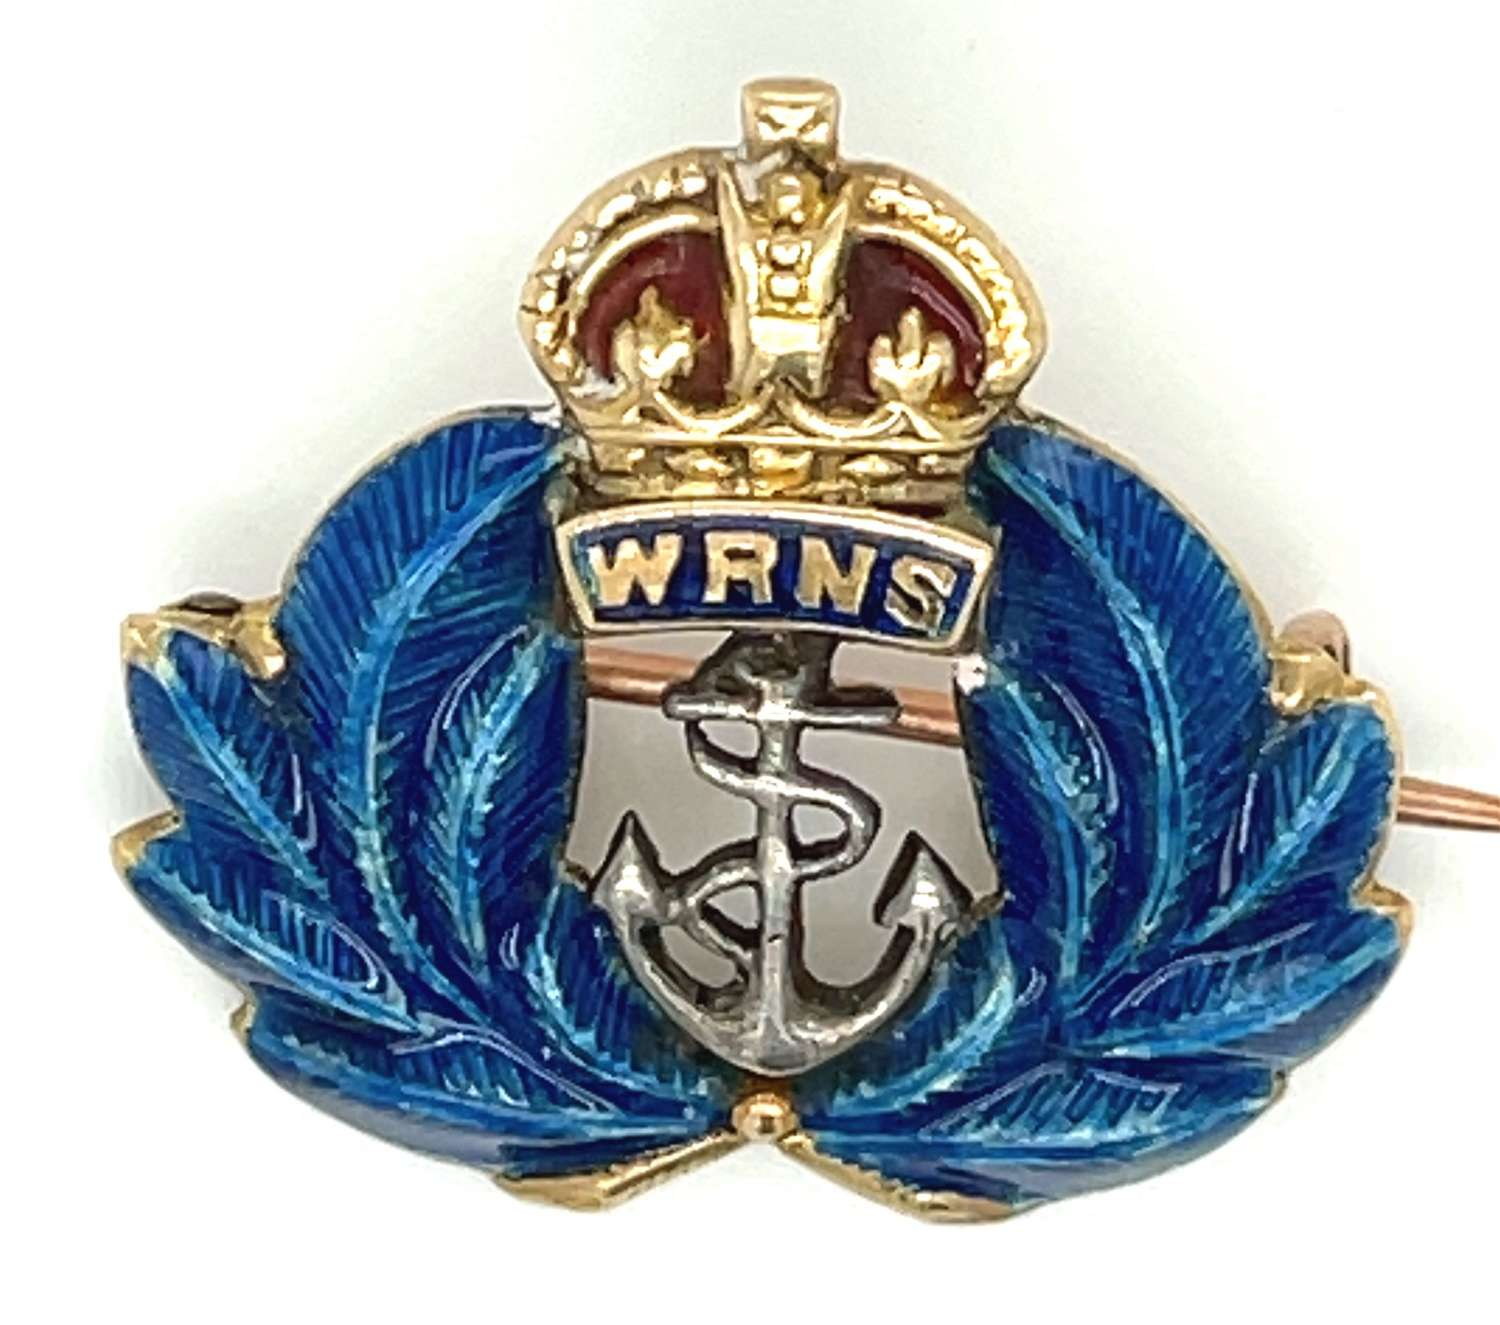 Antique 15ct Gold and Enamel WRNS Badge - Page Plymouth.